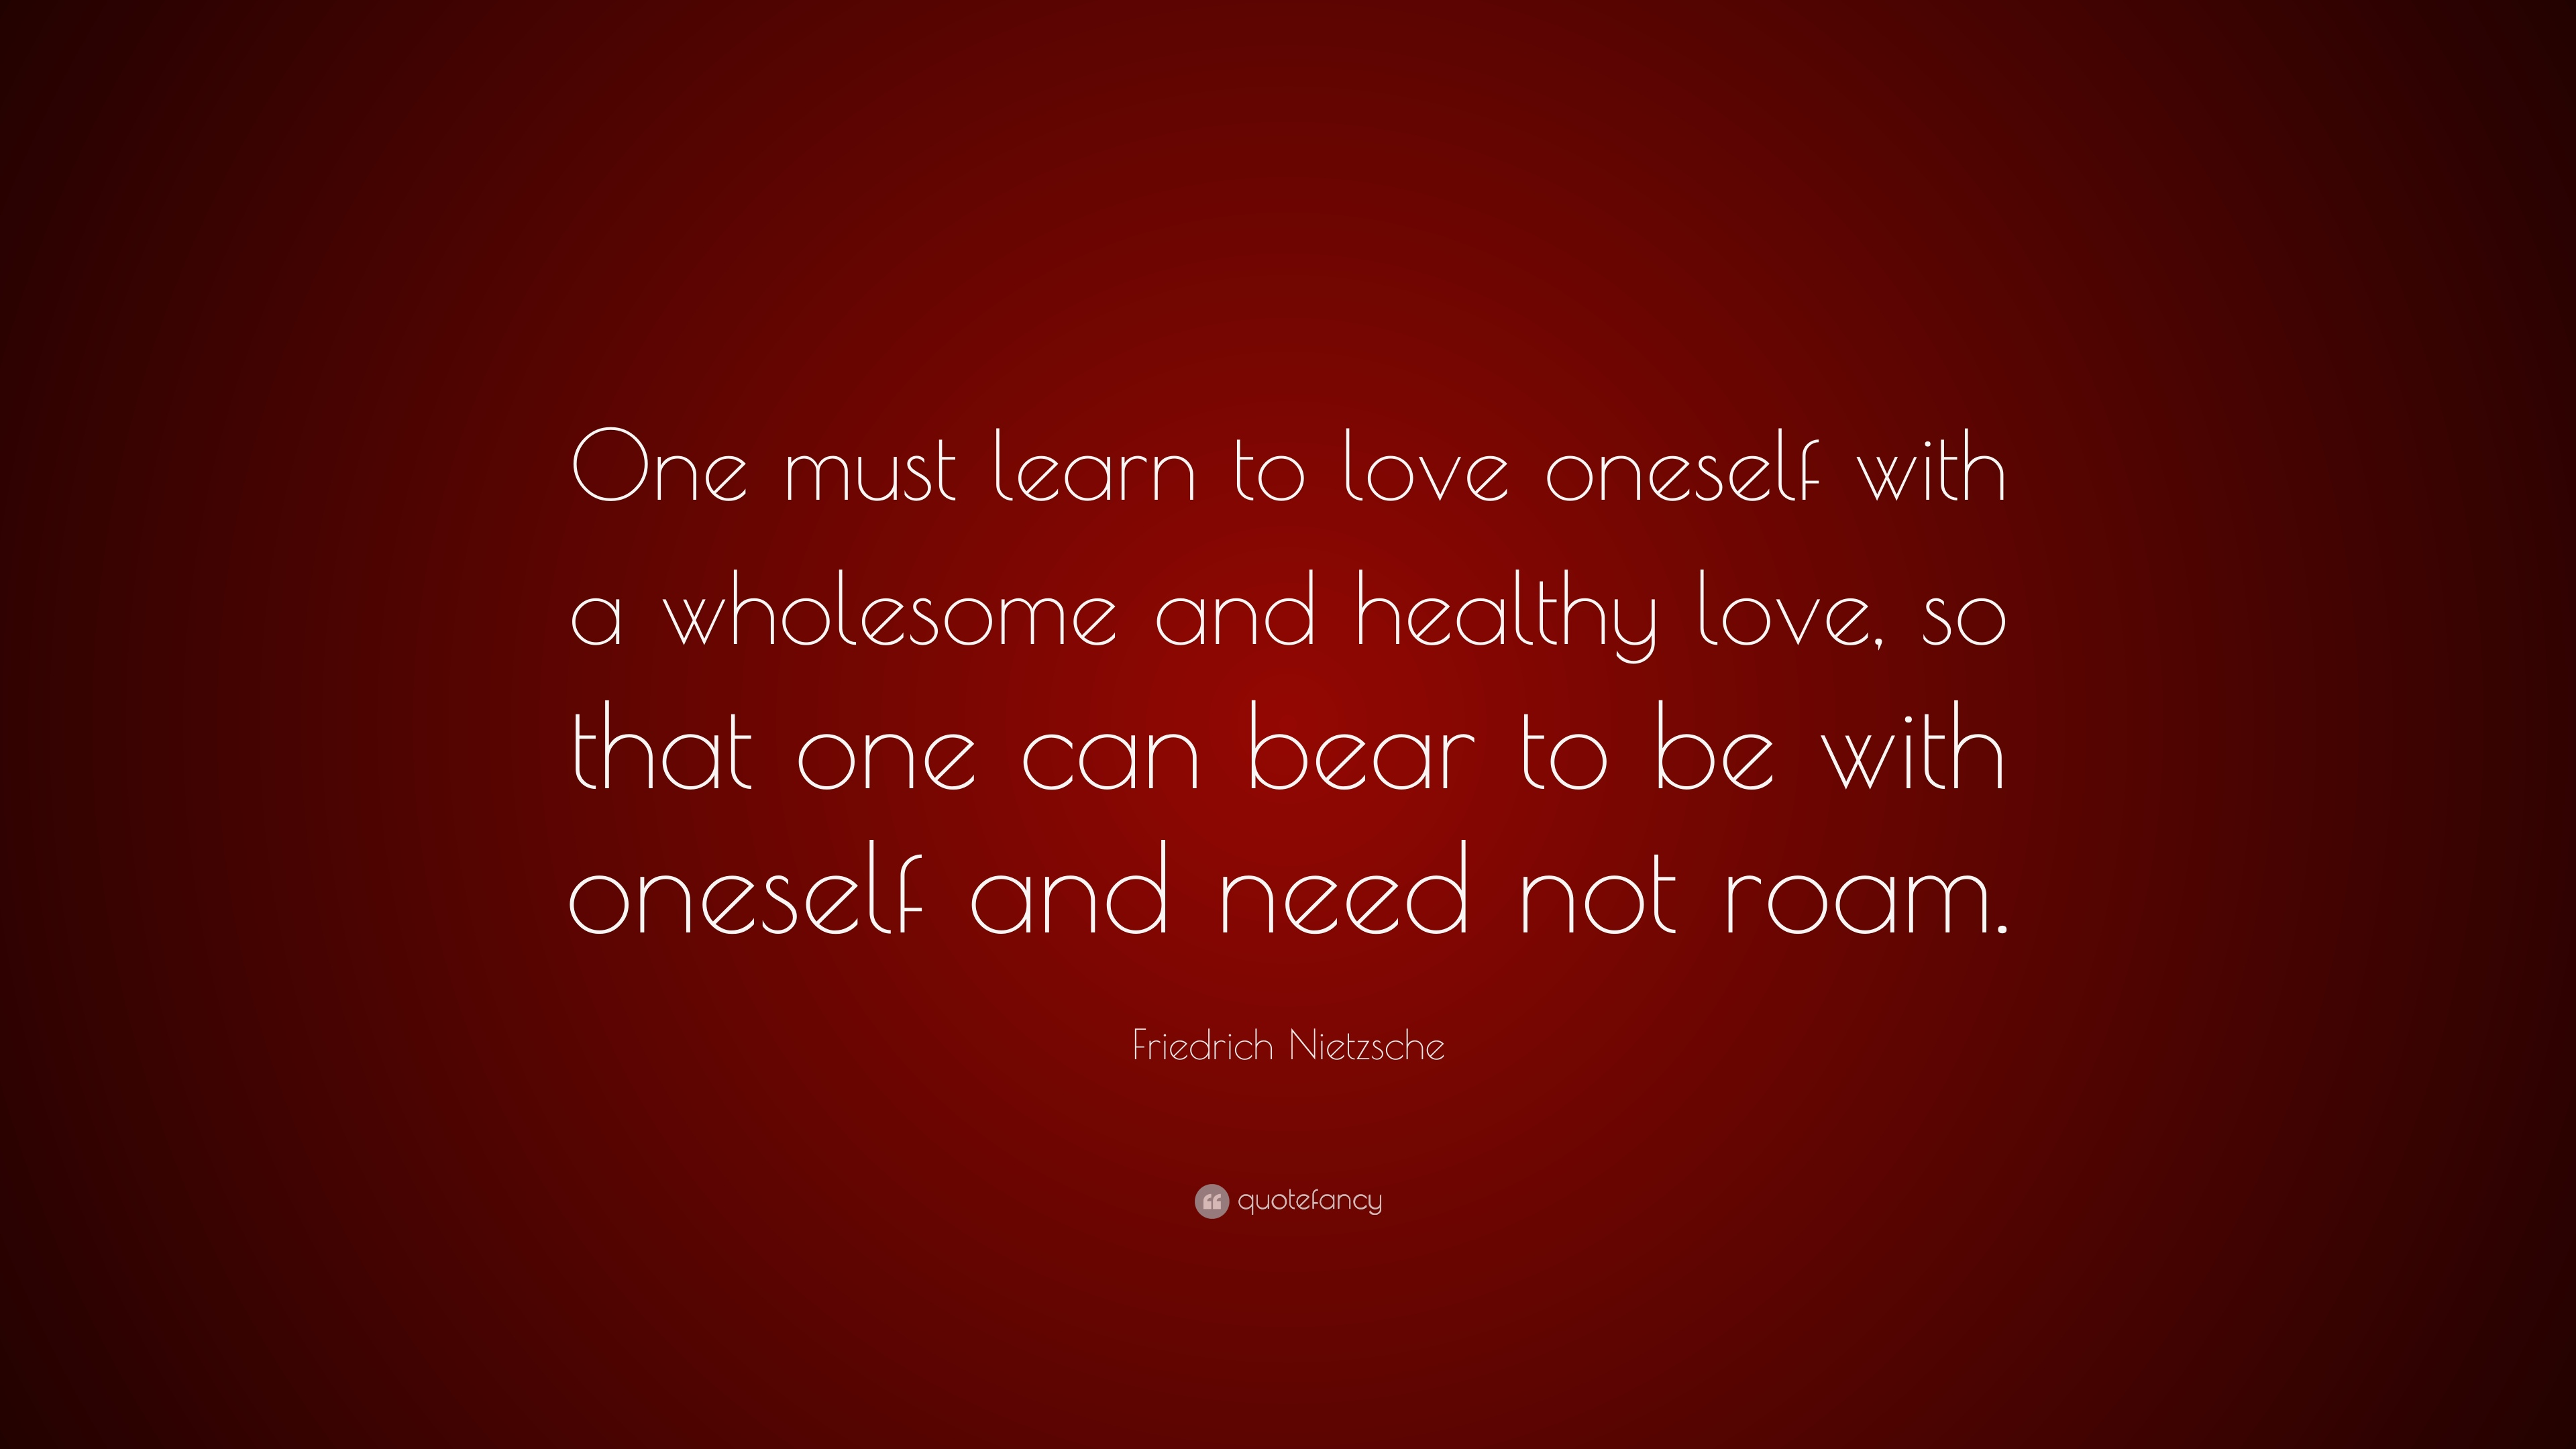 Friedrich Nietzsche Quote One Must Learn To Love Oneself With A